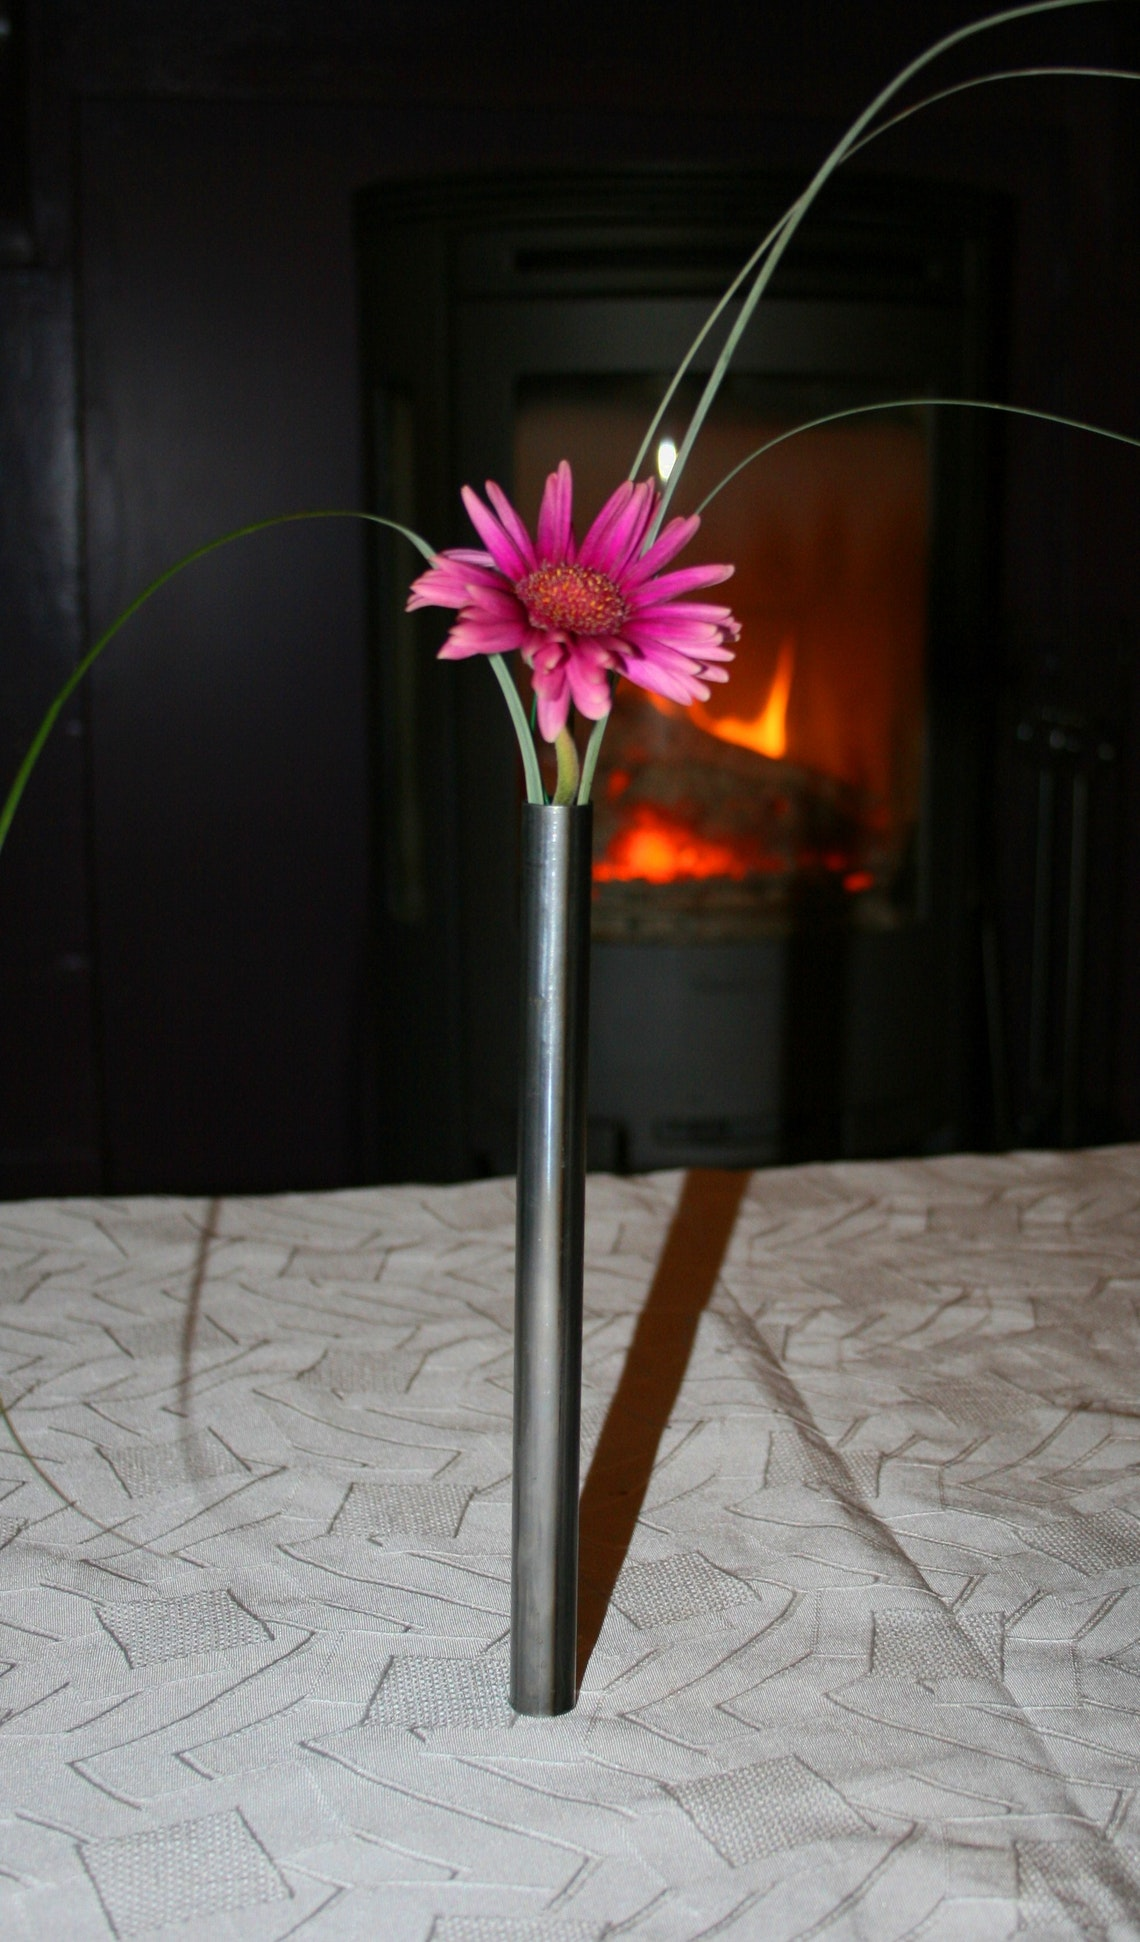 The vase seems to stand stable on the table on its own.